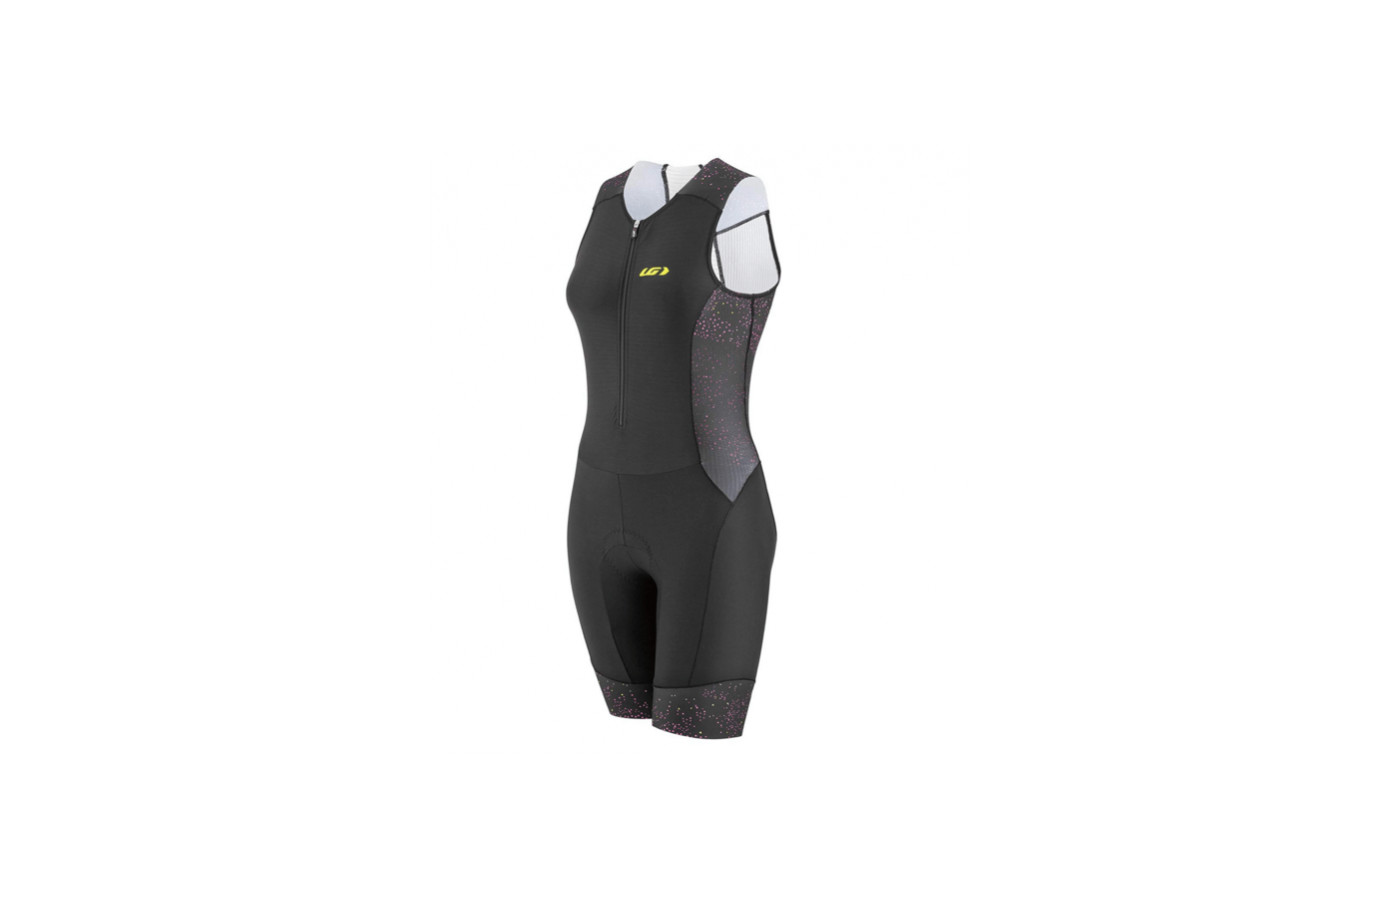 The Pro Carbon tri suit is equipped with coldblack technology